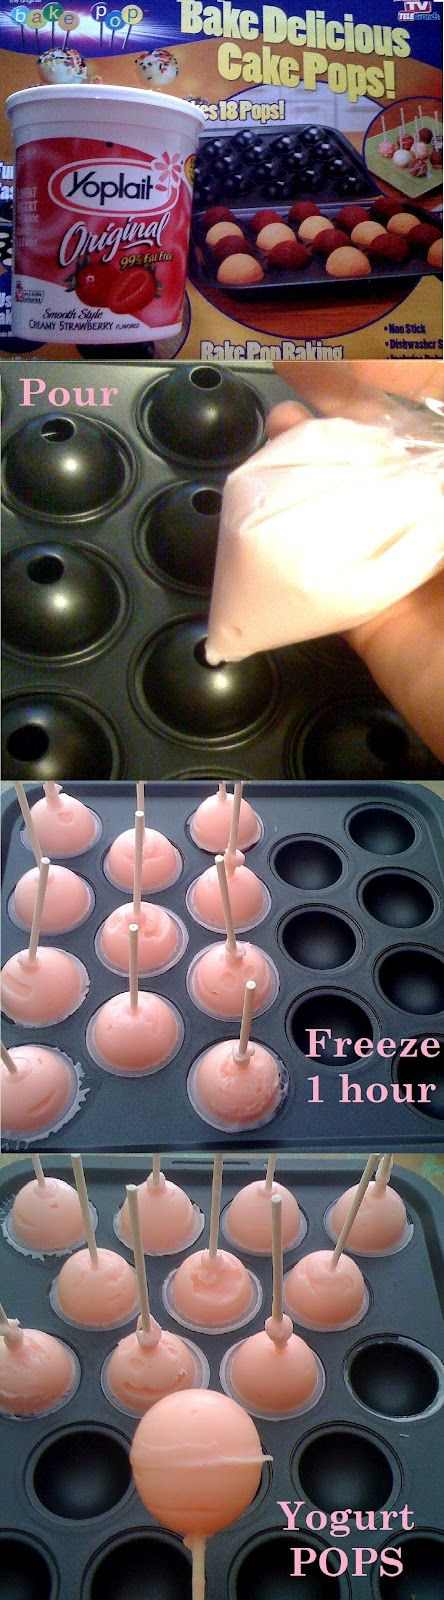 "YOGURT POPS  ""Cake Pop"" pan to good use. Fat Free Strawberry Yogurt and placed it in a plastic baggie for easy pouring. Clamped the cake pop pan with the two yellow rubber clips it came with...Filled the cake pop pan Make sure you shake and bang on the table or you will get air bubbles and add pop sticks when they are full. {Freeze} They are ready in an hour.  If they stick you can fill up your sink with warm water and place pan in the water just for a few seconds."